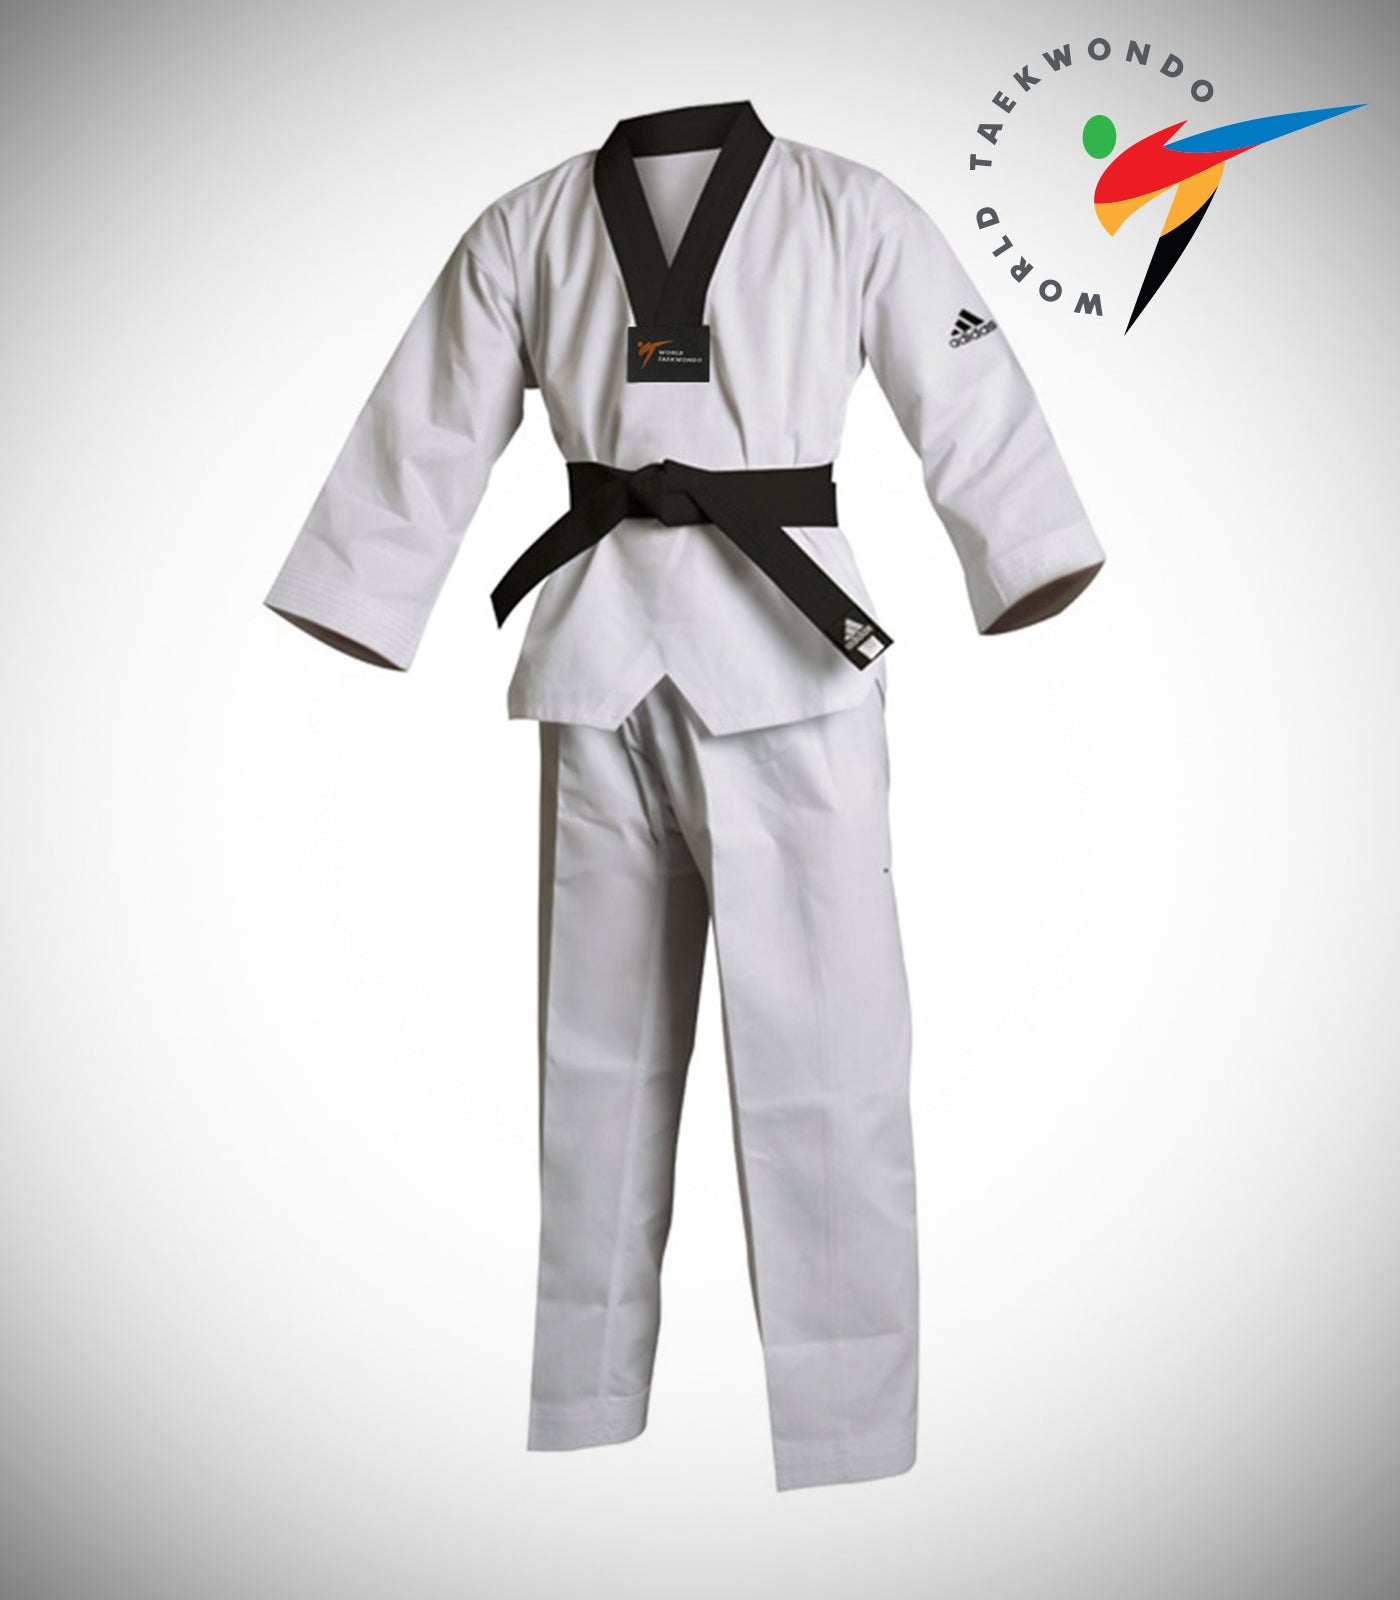 ADIDAS ADI-START BLACK/V TAEKWONDO UNIFORM